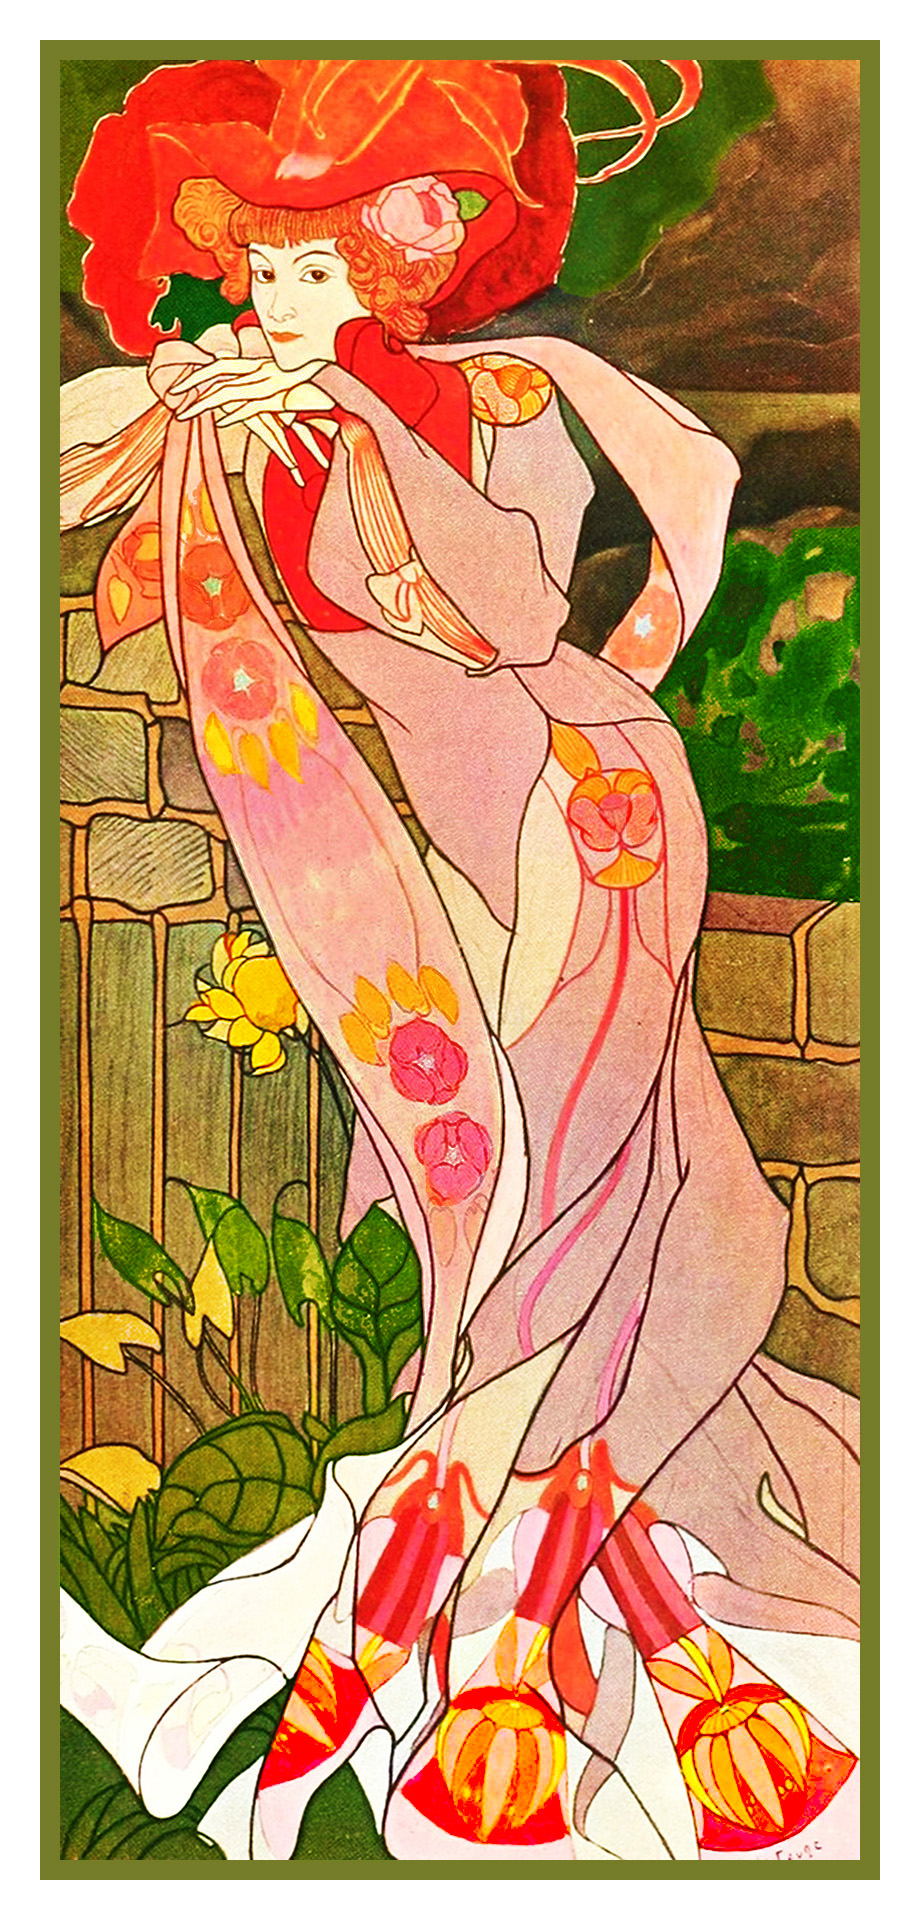 cross stitch chart also available as A4 glossy print ART NOUVEAU LADY